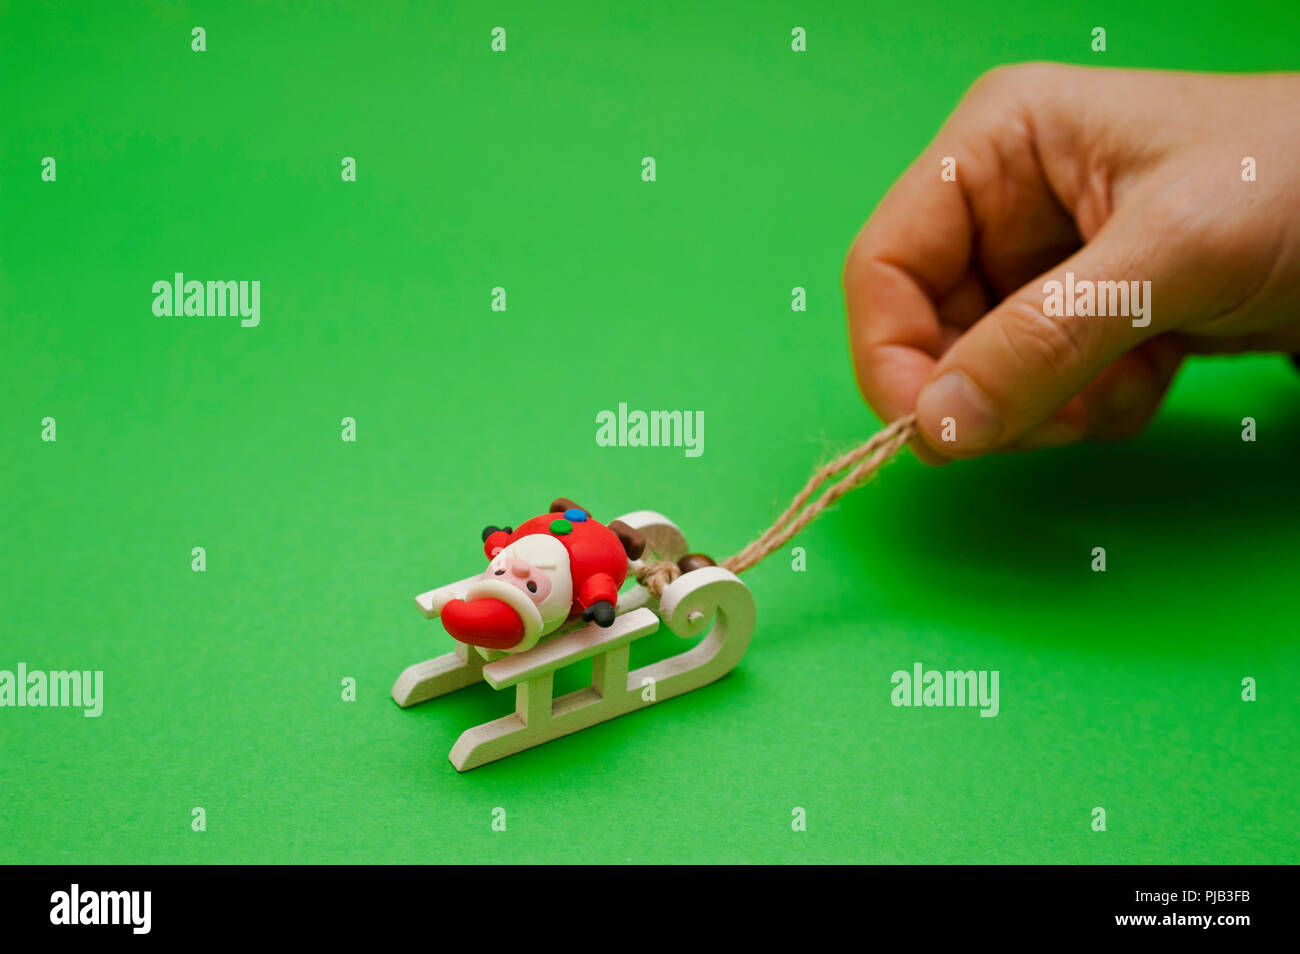 male hand pulling a Santa Claus figurine on a sledge - Stock Image